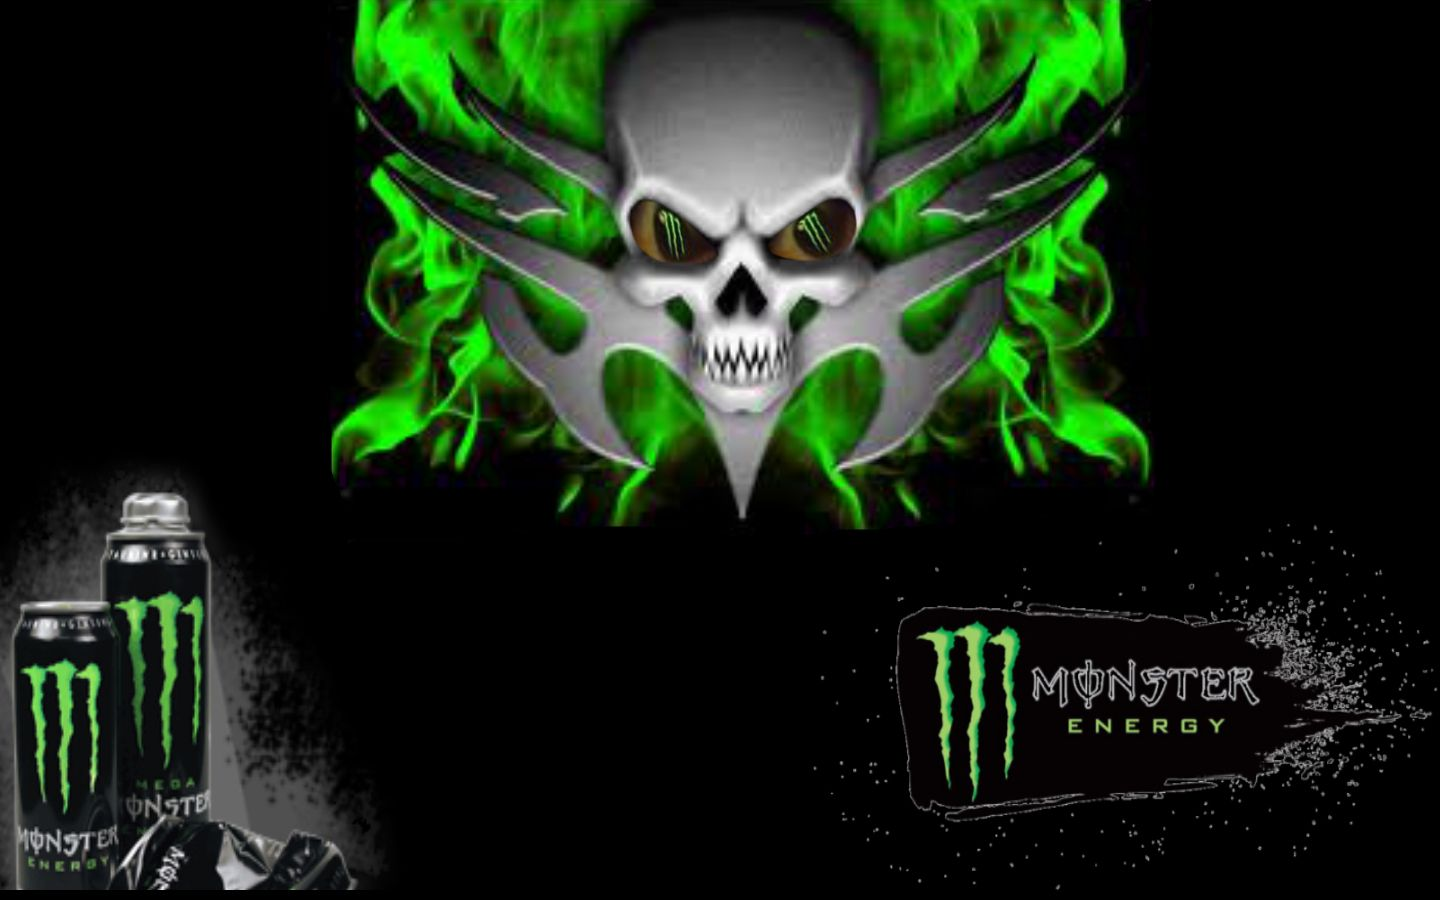 1440x900 Monster Energy Wallpaper Background Image View Download Comment And Rate Wallpaper Abyss Monster Pictures Cute Monsters Under Armour Wallpaper